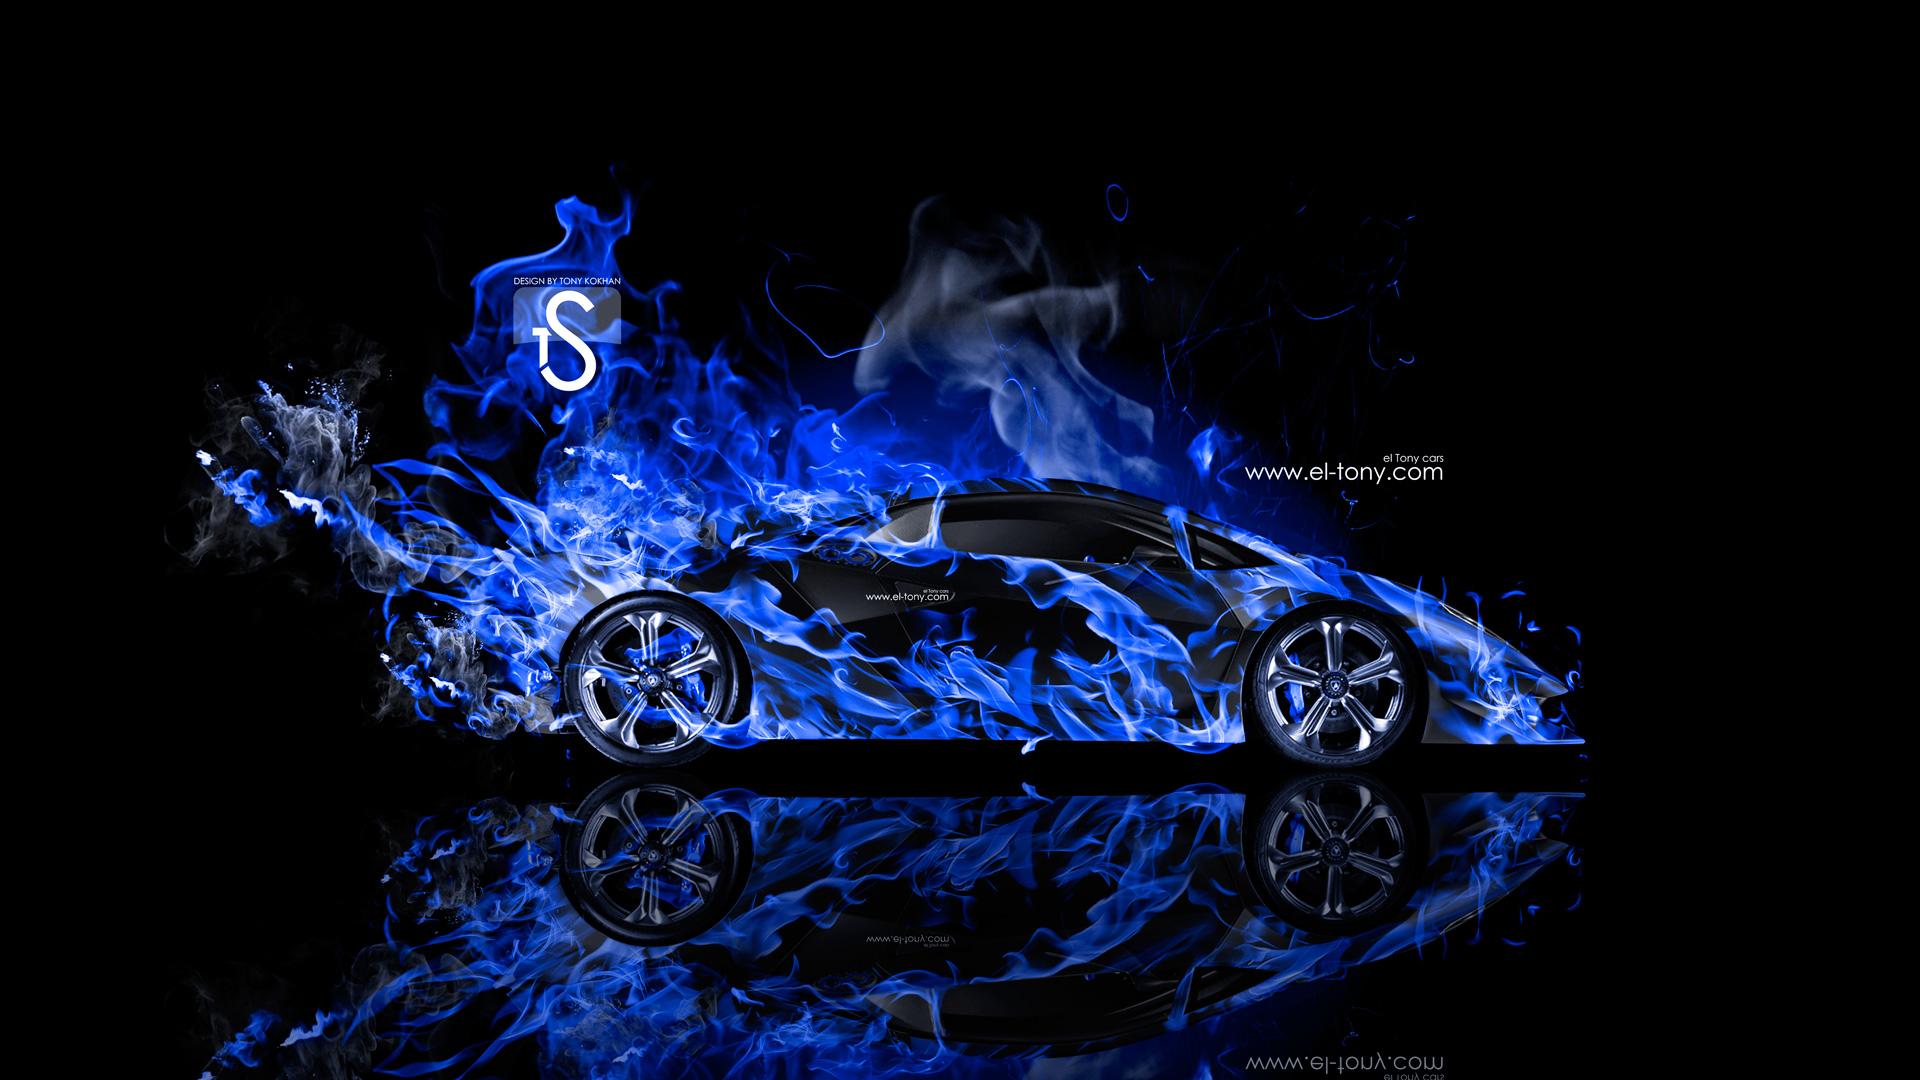 Lamborghini Huracan Back Fire Abstract Car 2014 · Lamborghini Sesto  Elemento Fire Abstract Car 2014